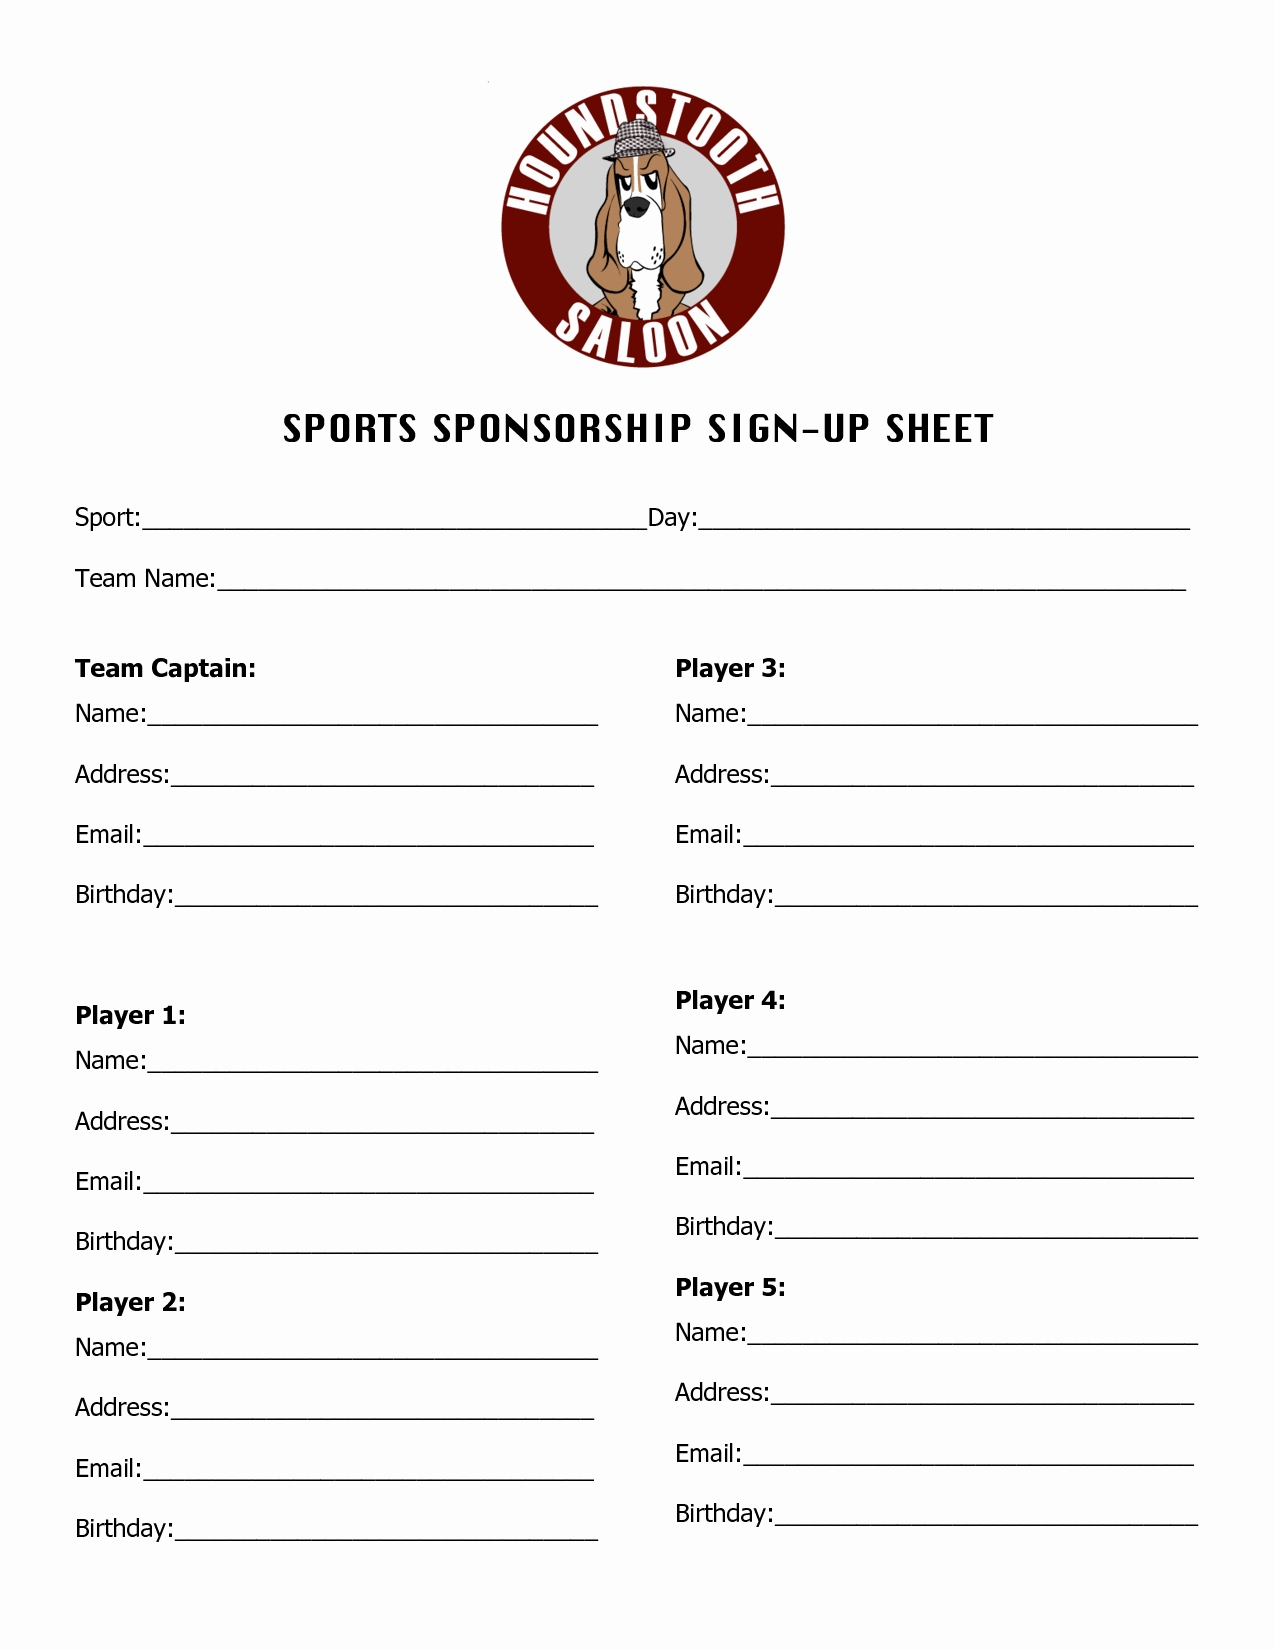 birthday sign ups ; youth-baseball-stats-spreadsheet-best-of-sport-sign-ups-enom-warb-of-youth-baseball-stats-spreadsheet